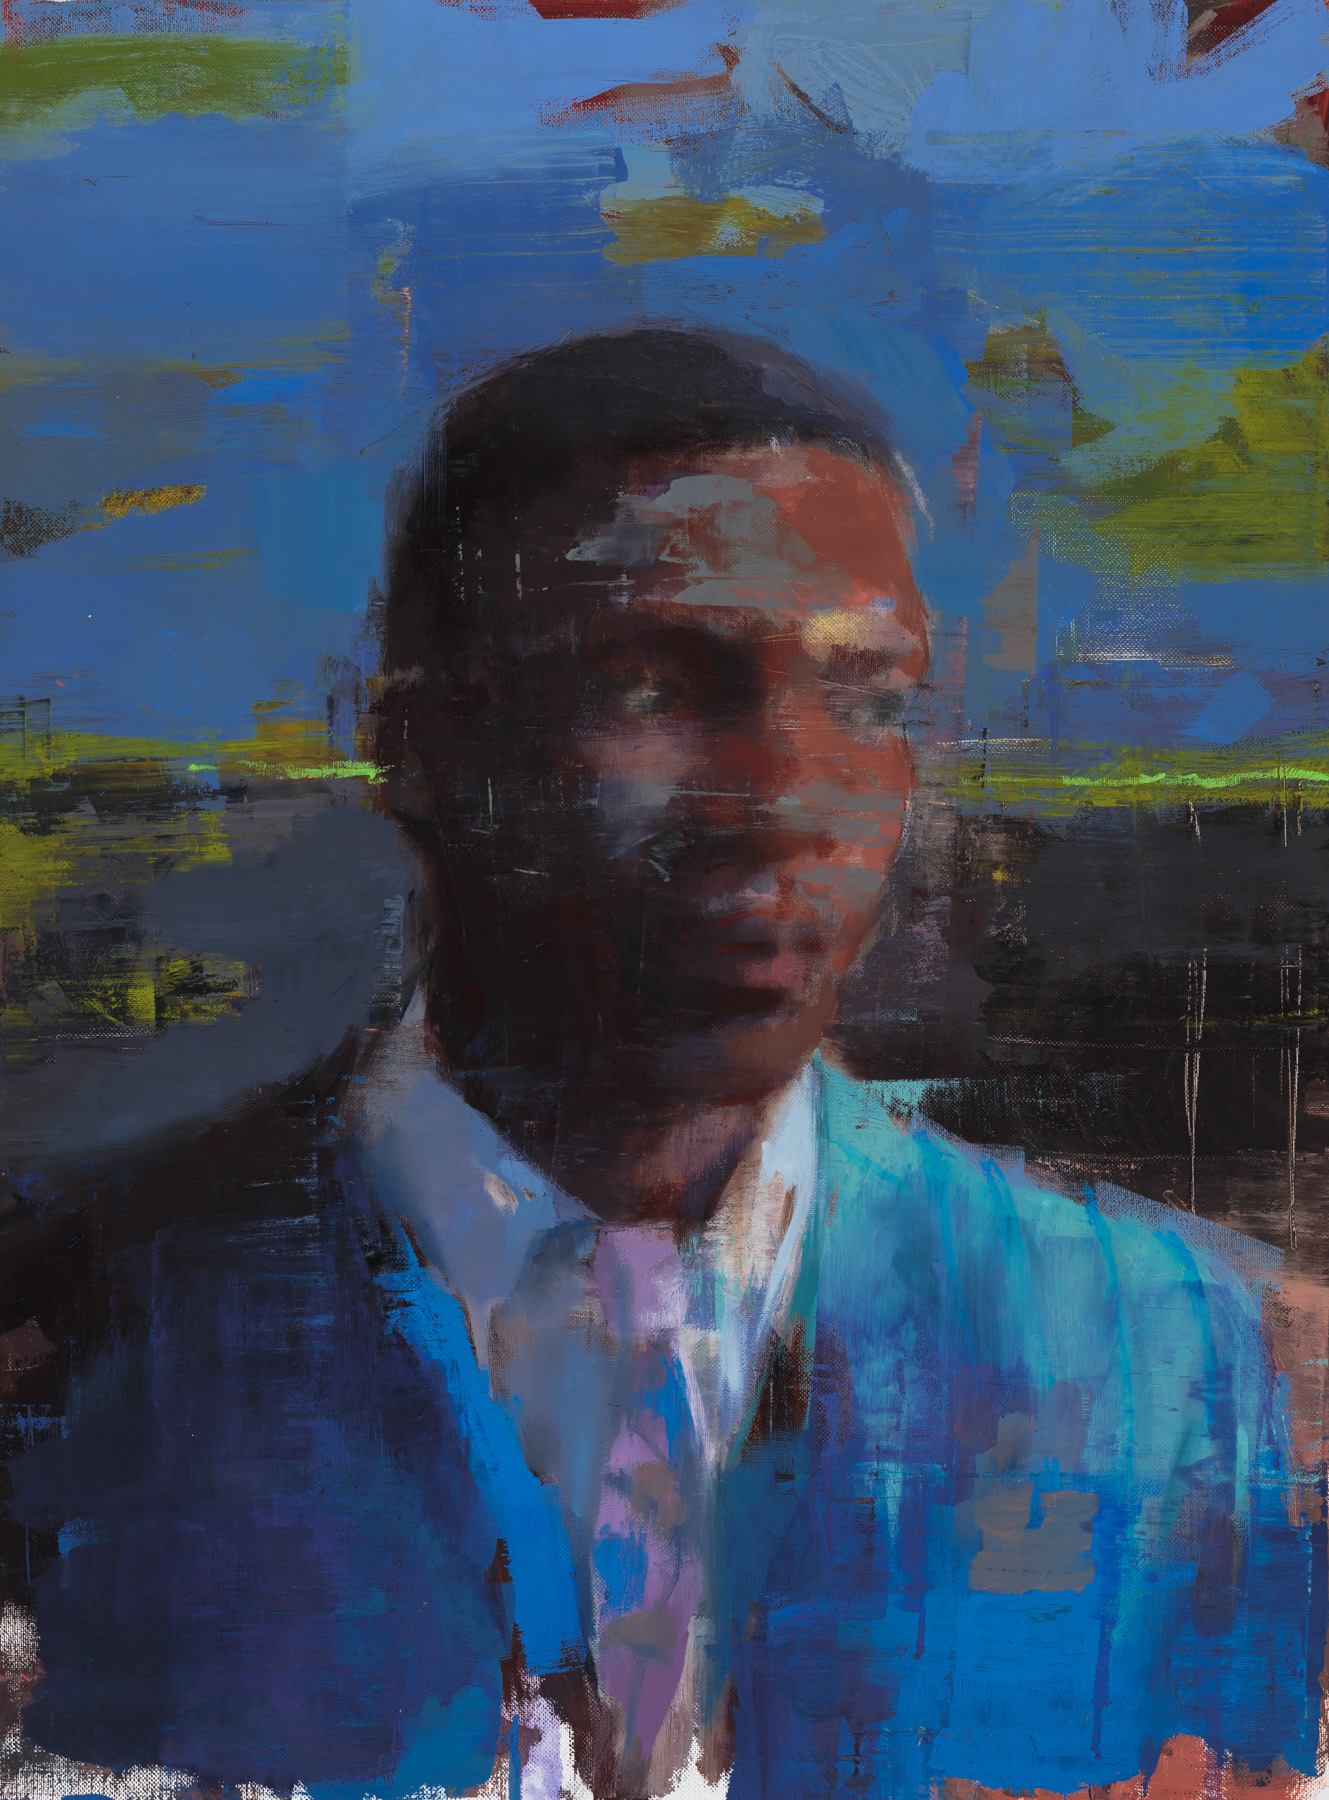 """ Young Coltrane  2018, 30"" x 21"" (73 x 54 cm), oil on linen."